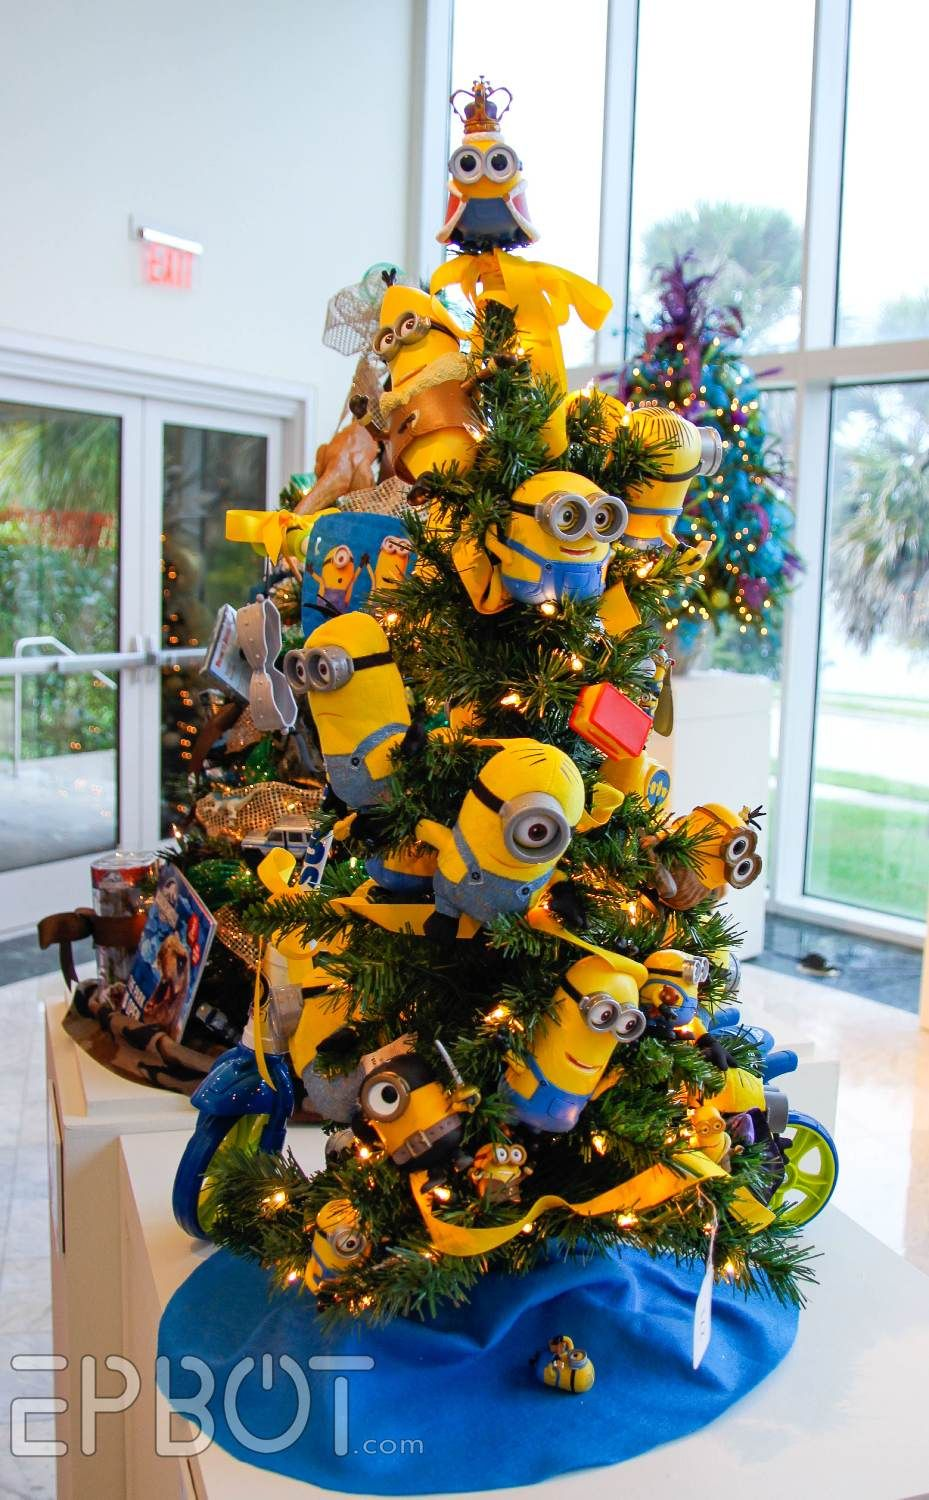 minion tree from epbot festival of trees 2015 aka the best christmas tree ideas to steal - Minion Christmas Tree